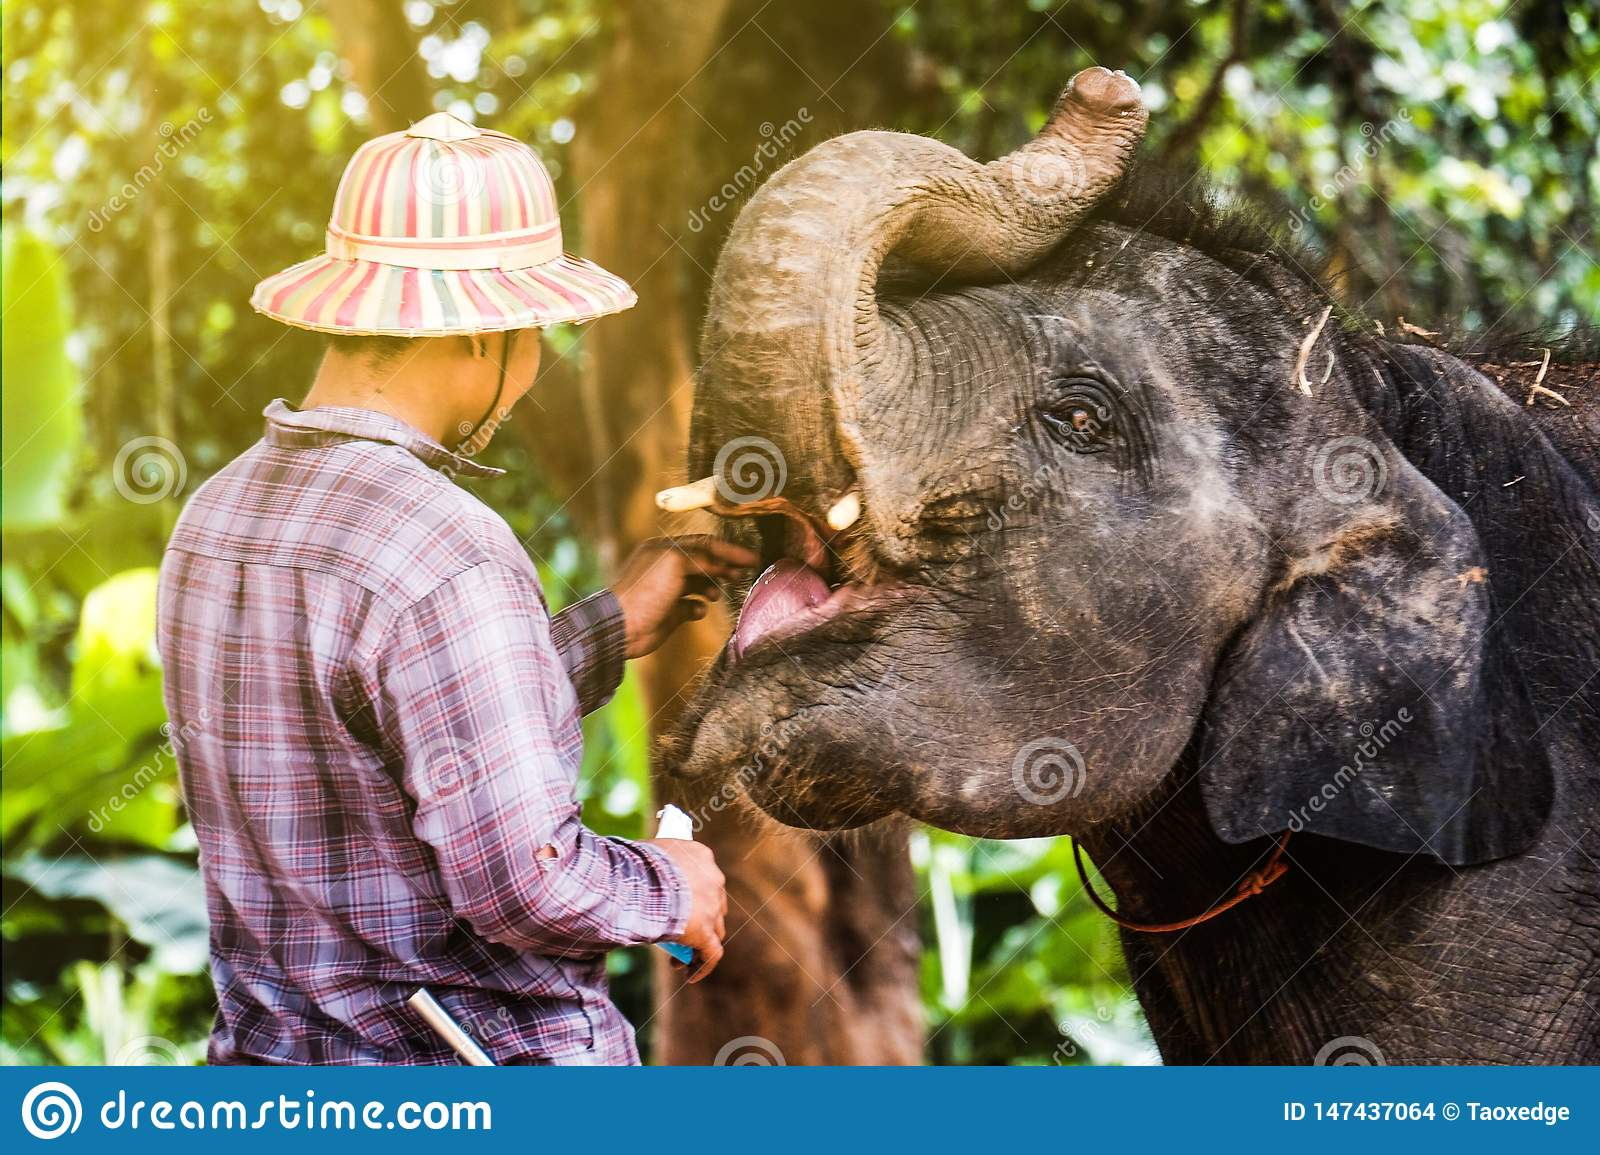 Elephant Village In Thailand